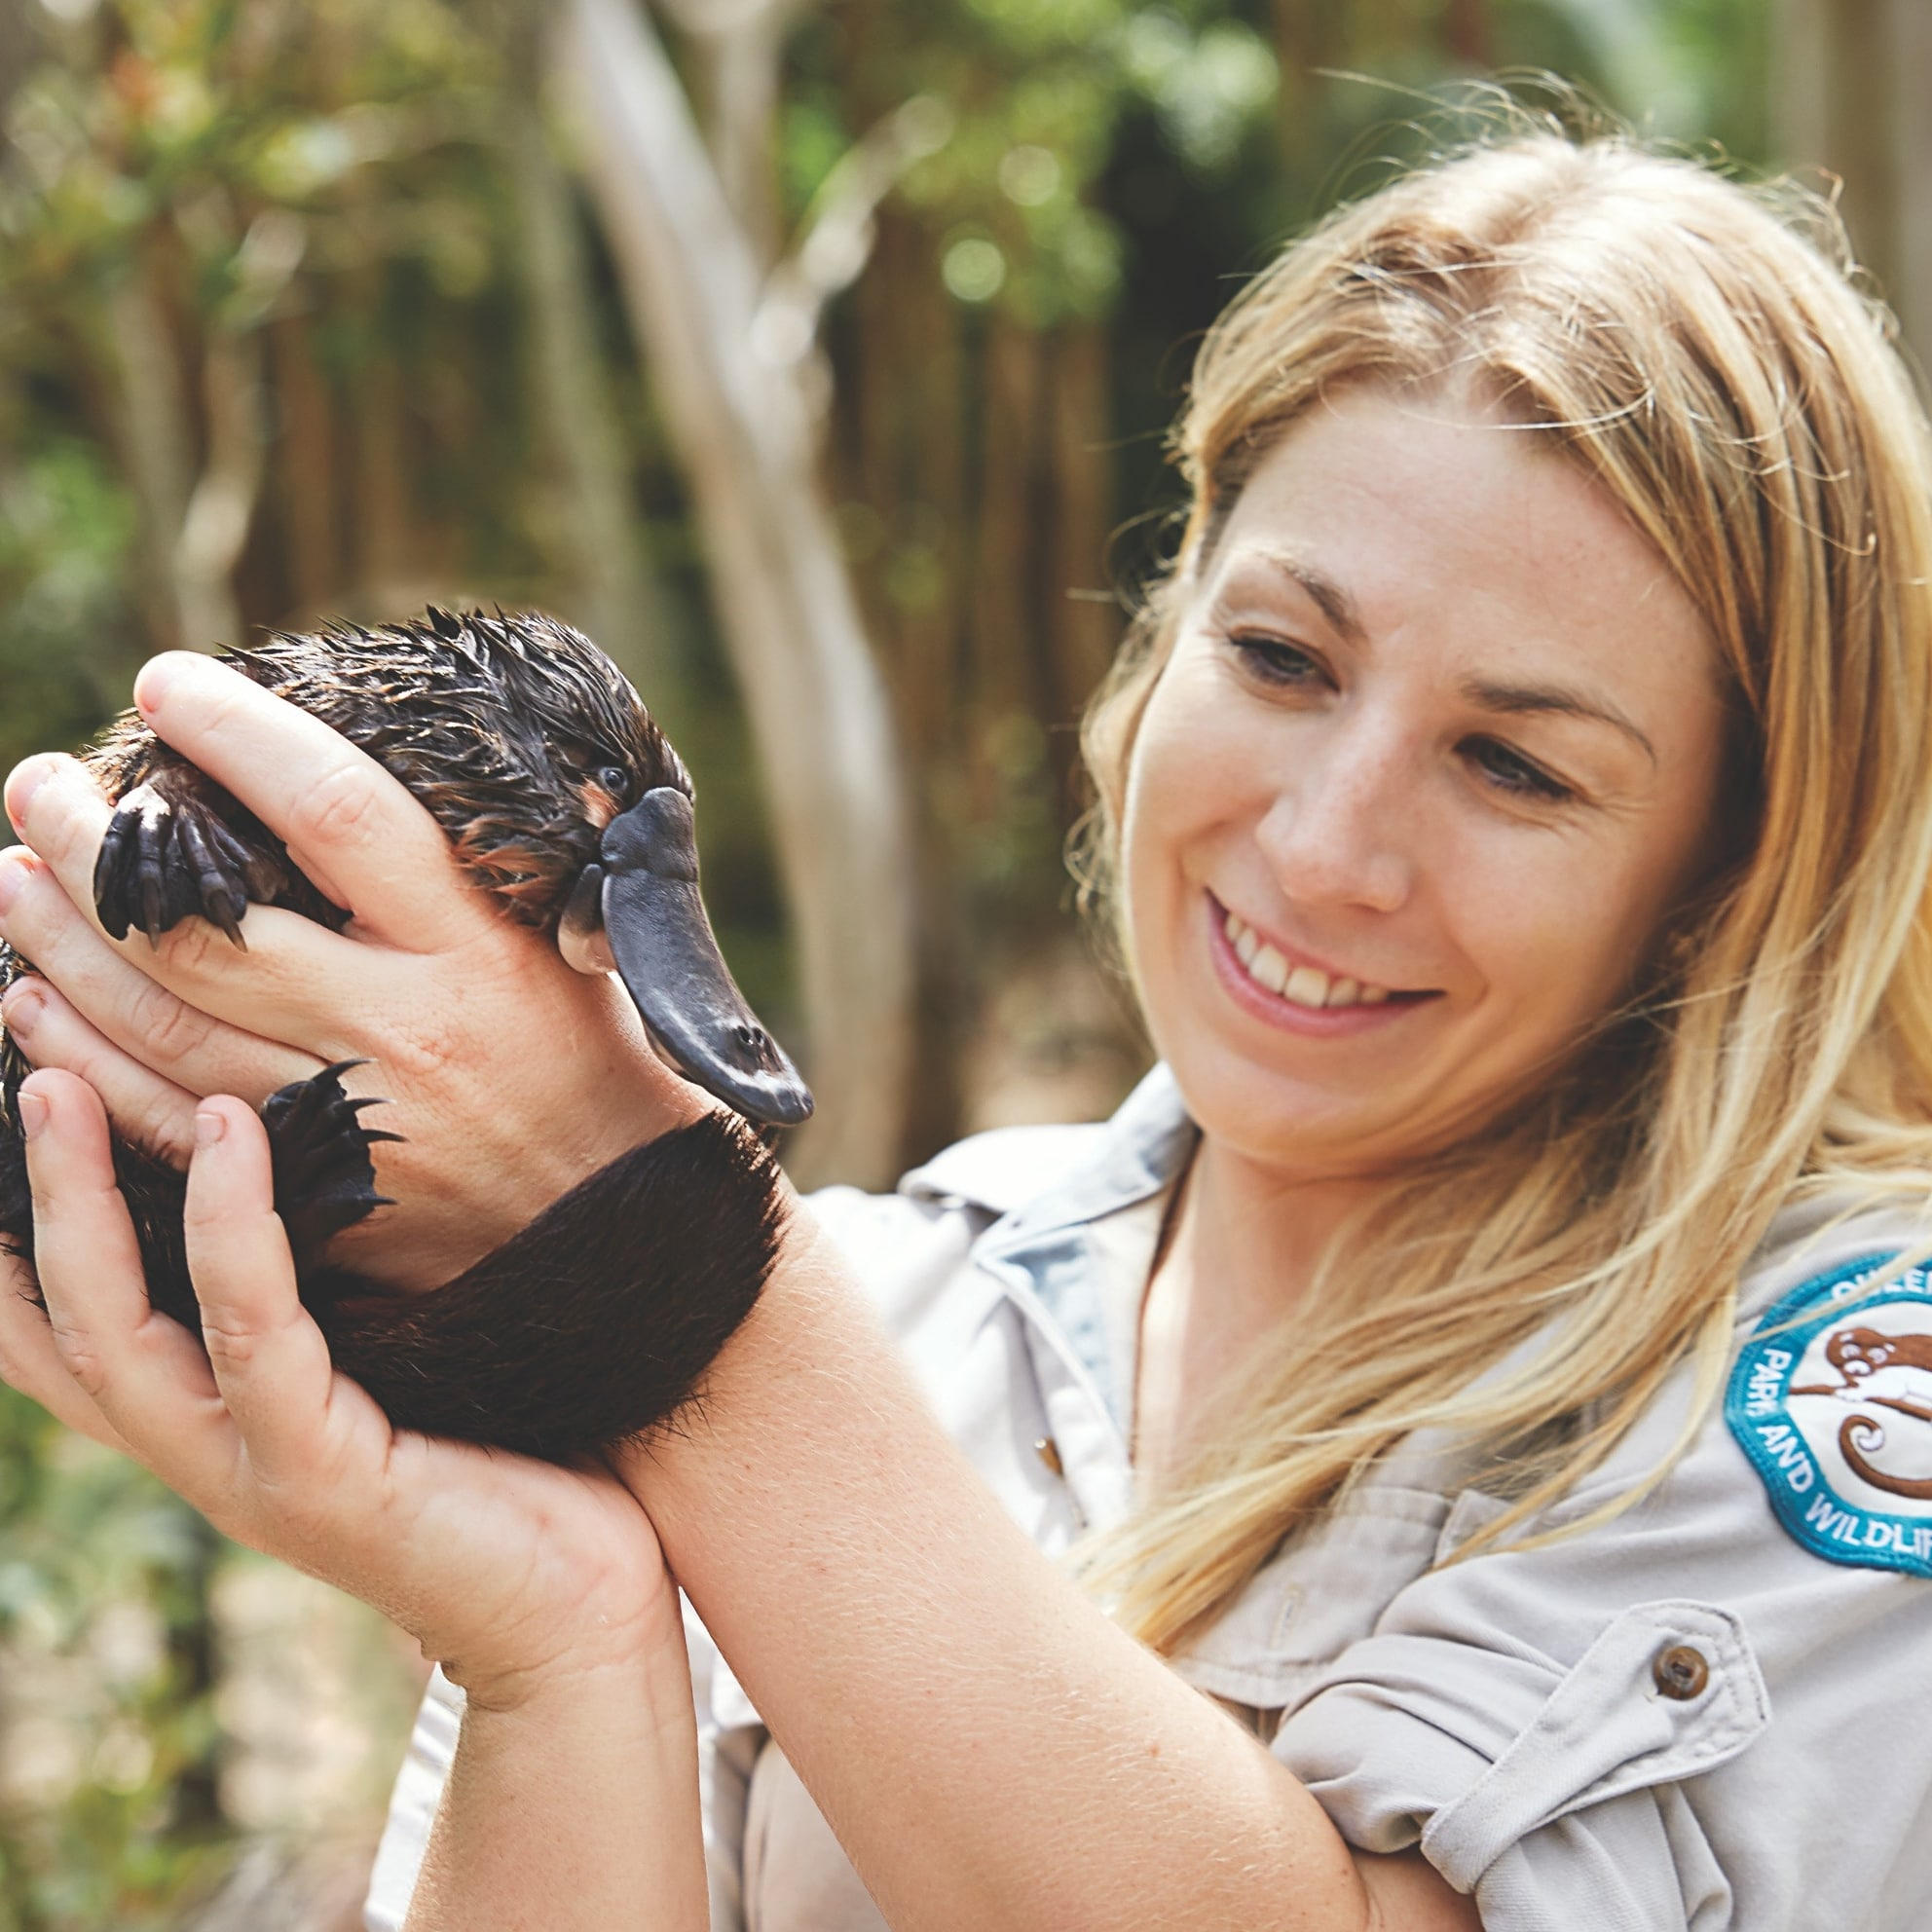 Ranger che tiene in braccio un ornitorinco al David Fleay Wildlife Park sulla Gold Coast © Queensland Government